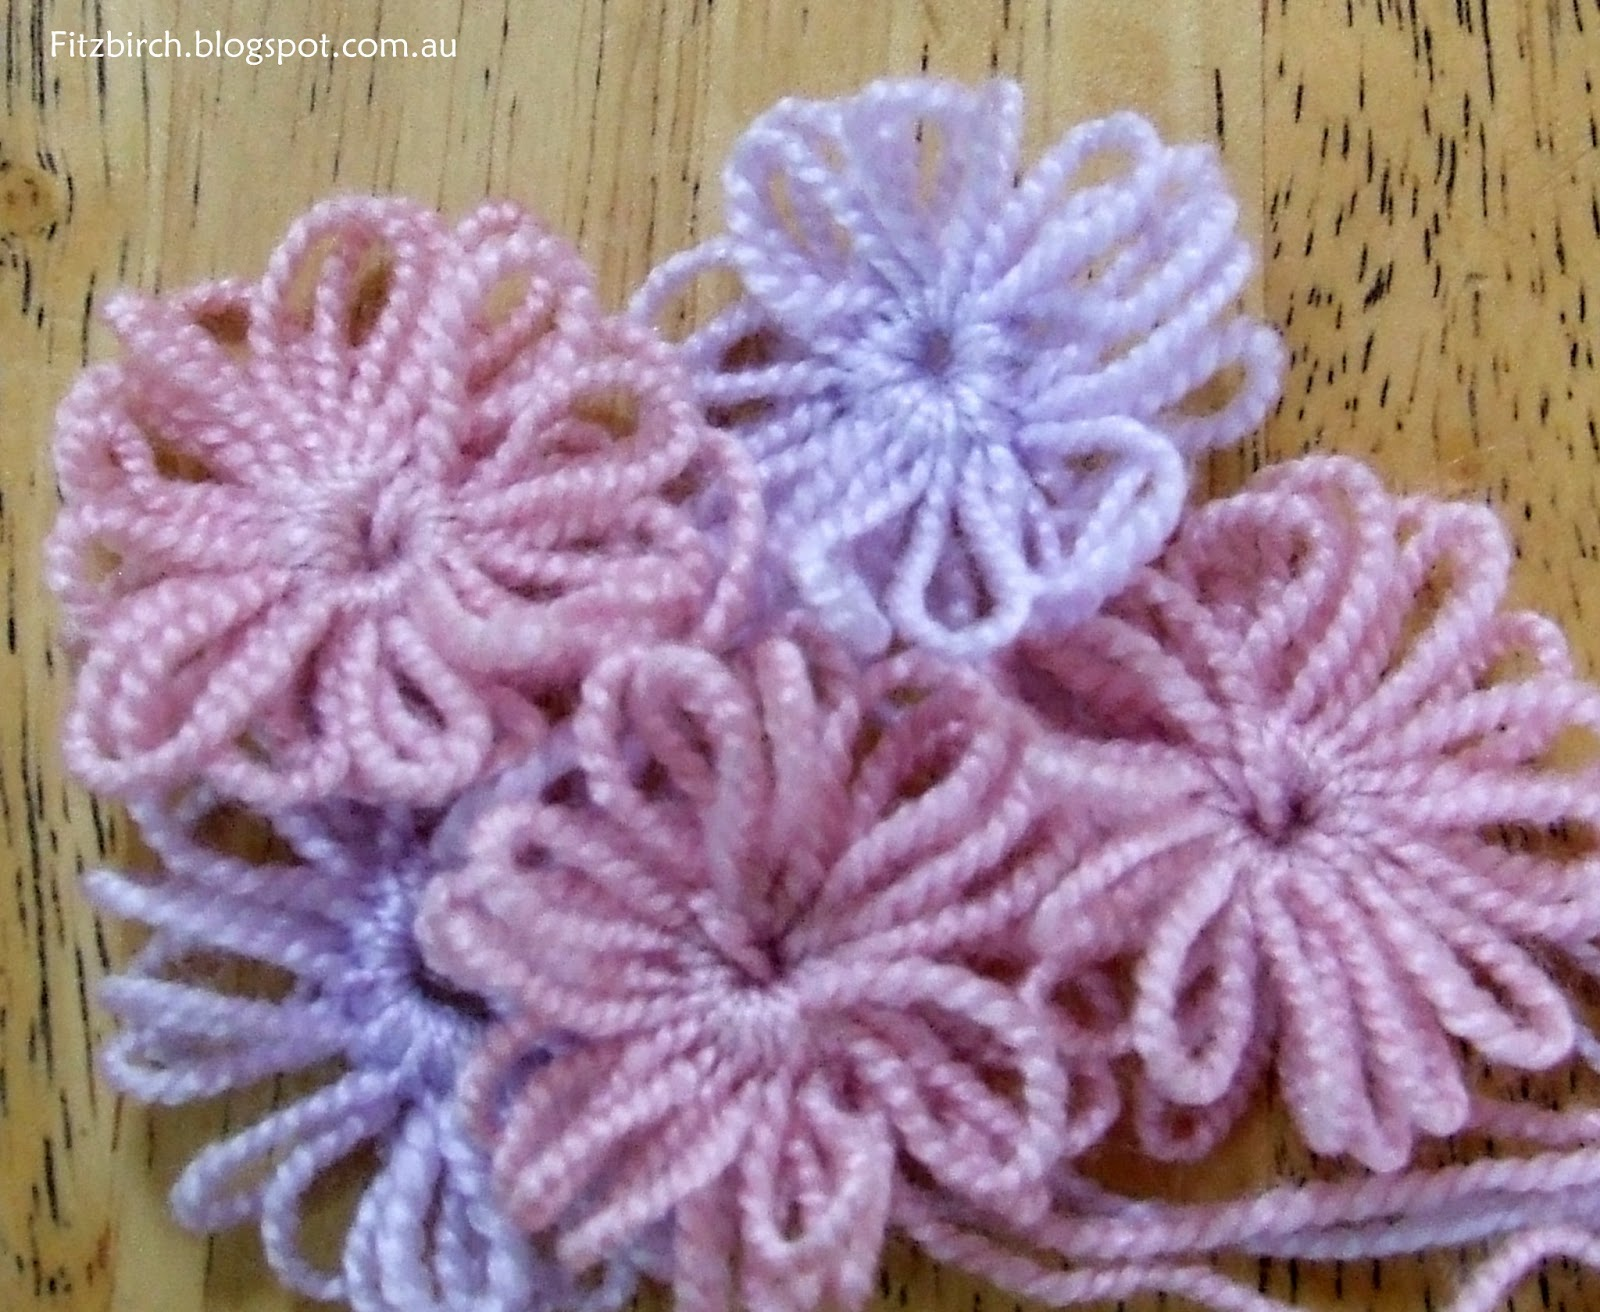 Knitting Flowers On A Loom : Fitzbirch crafts loom knit flowers